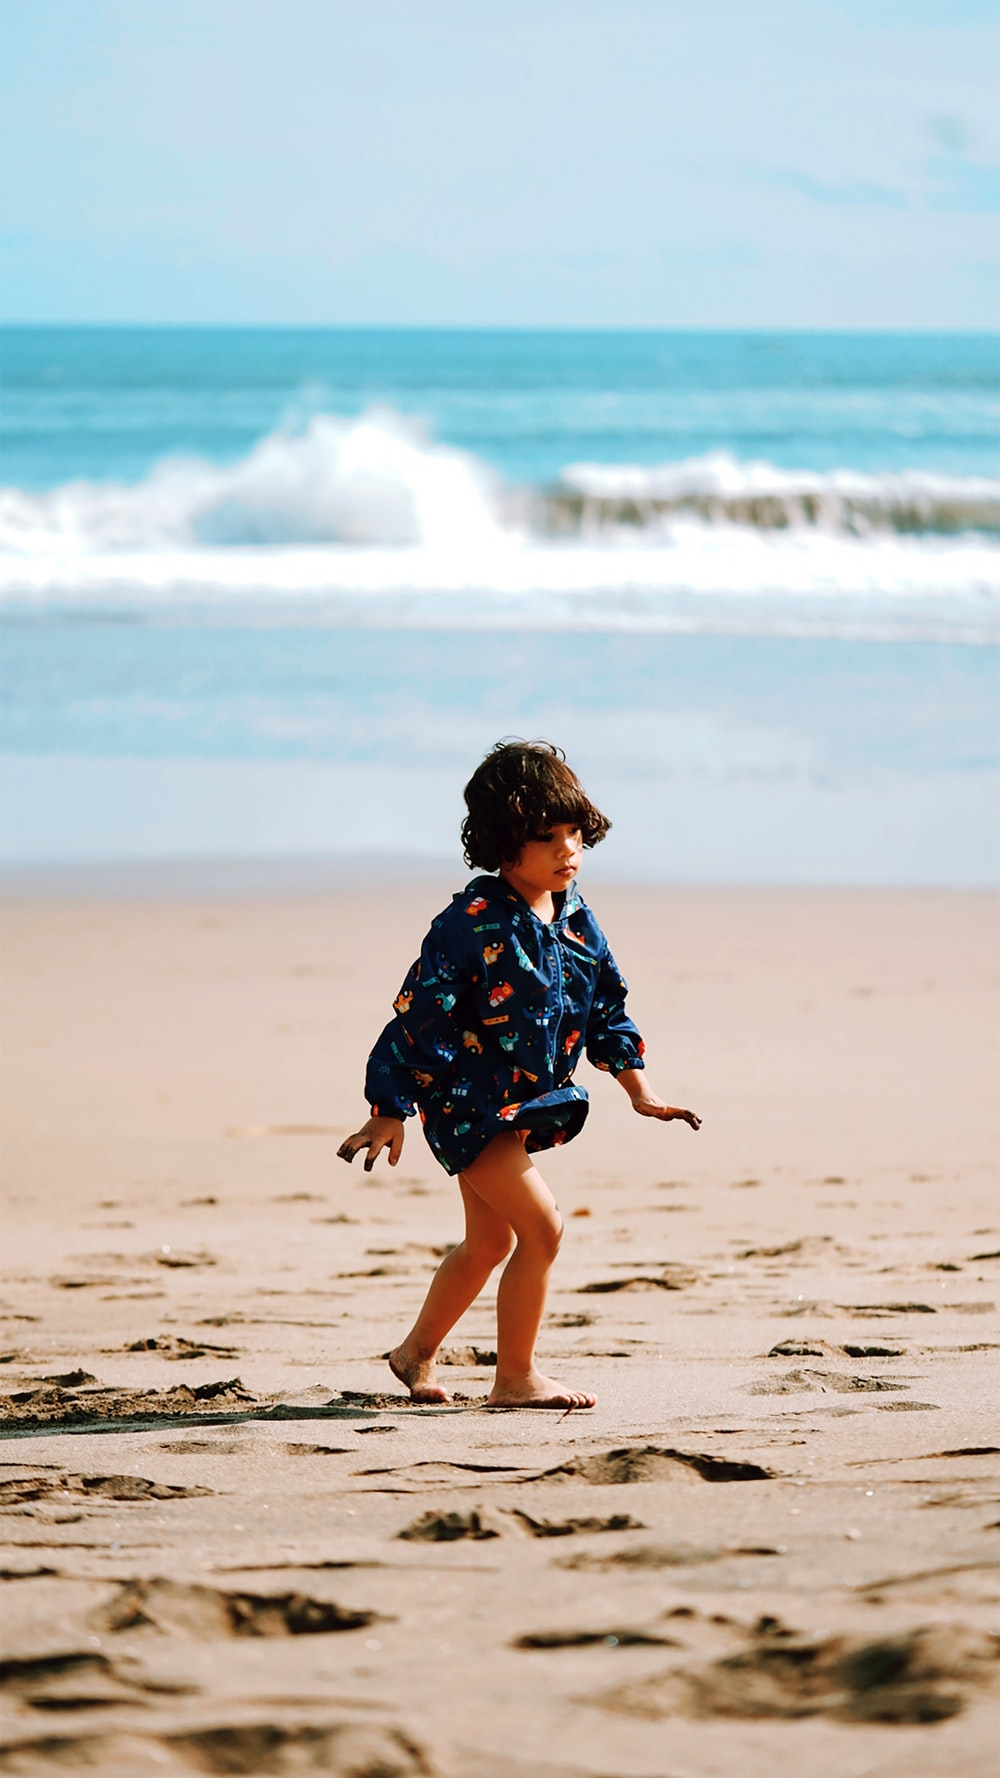 girl in blue and white floral dress walking on beach during daytime